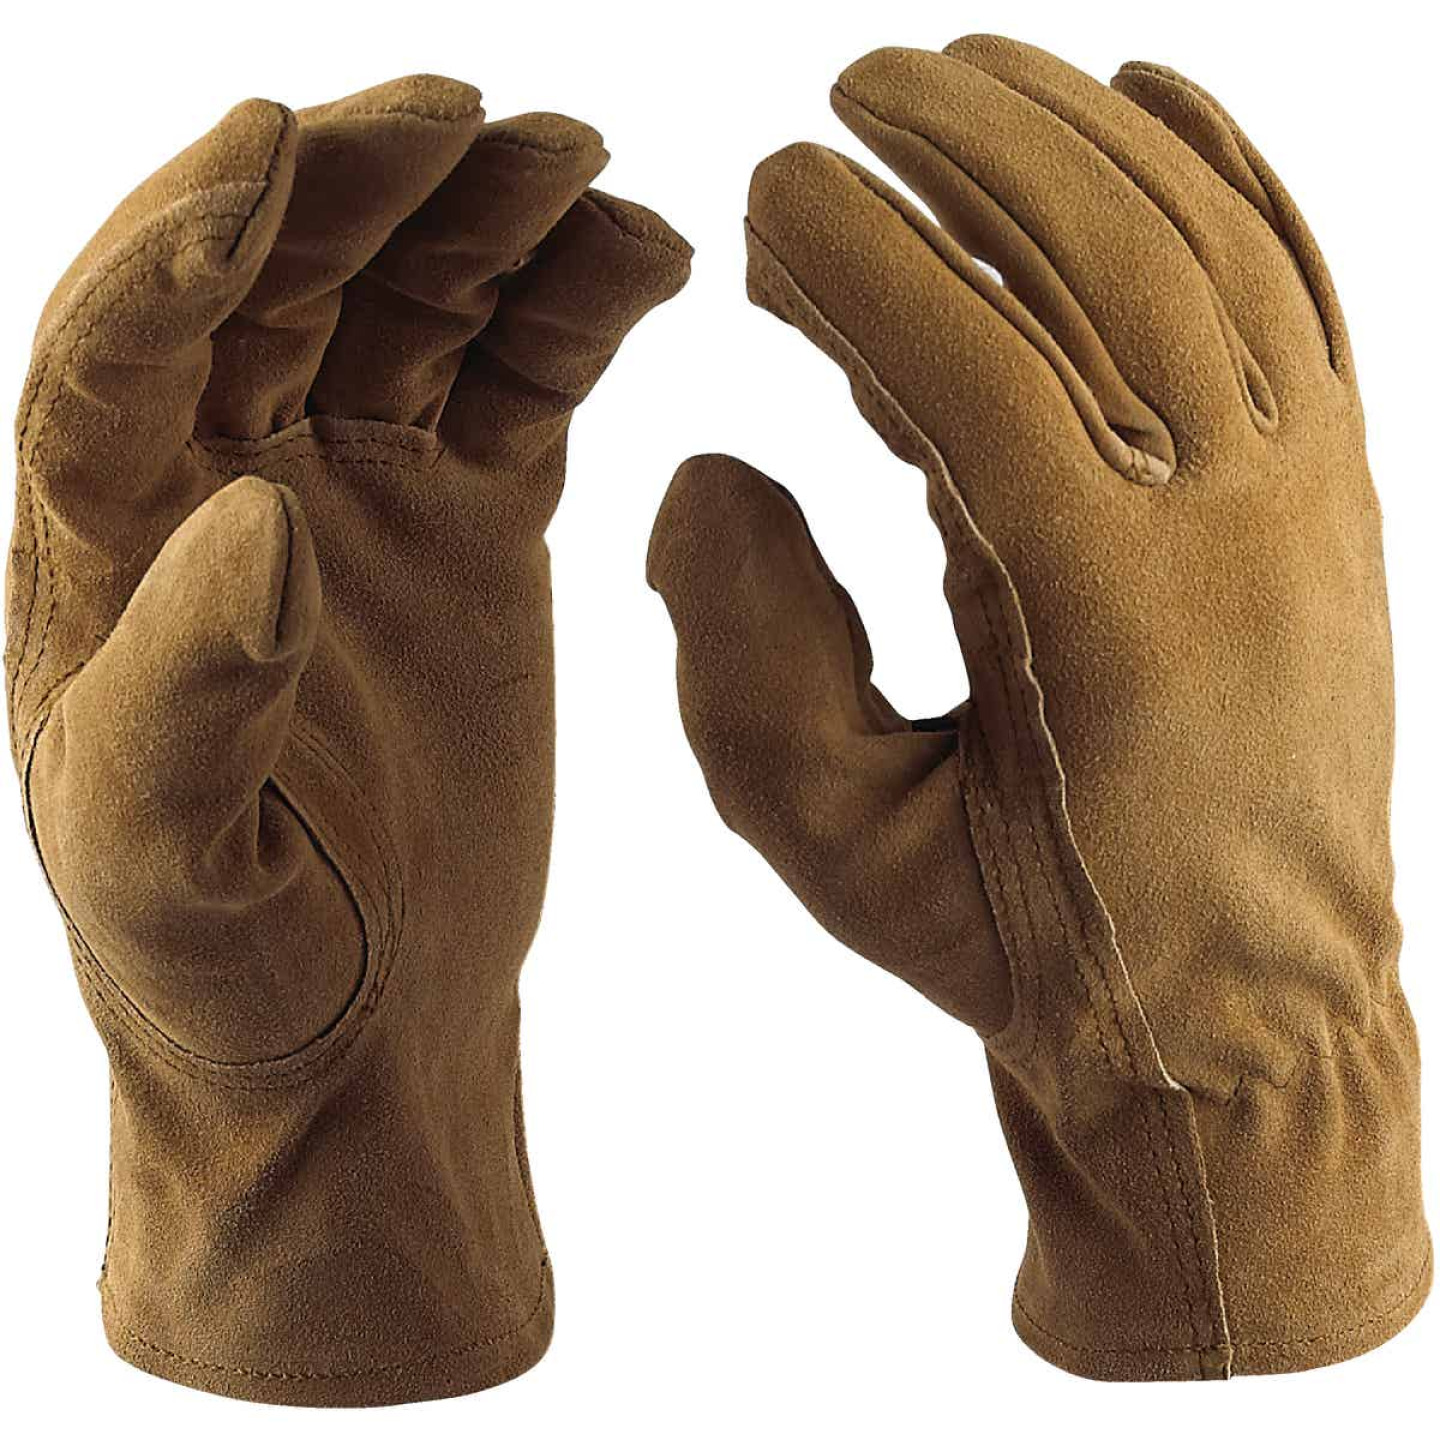 Do it Best Men's Large Suede Leather Work Glove Image 3